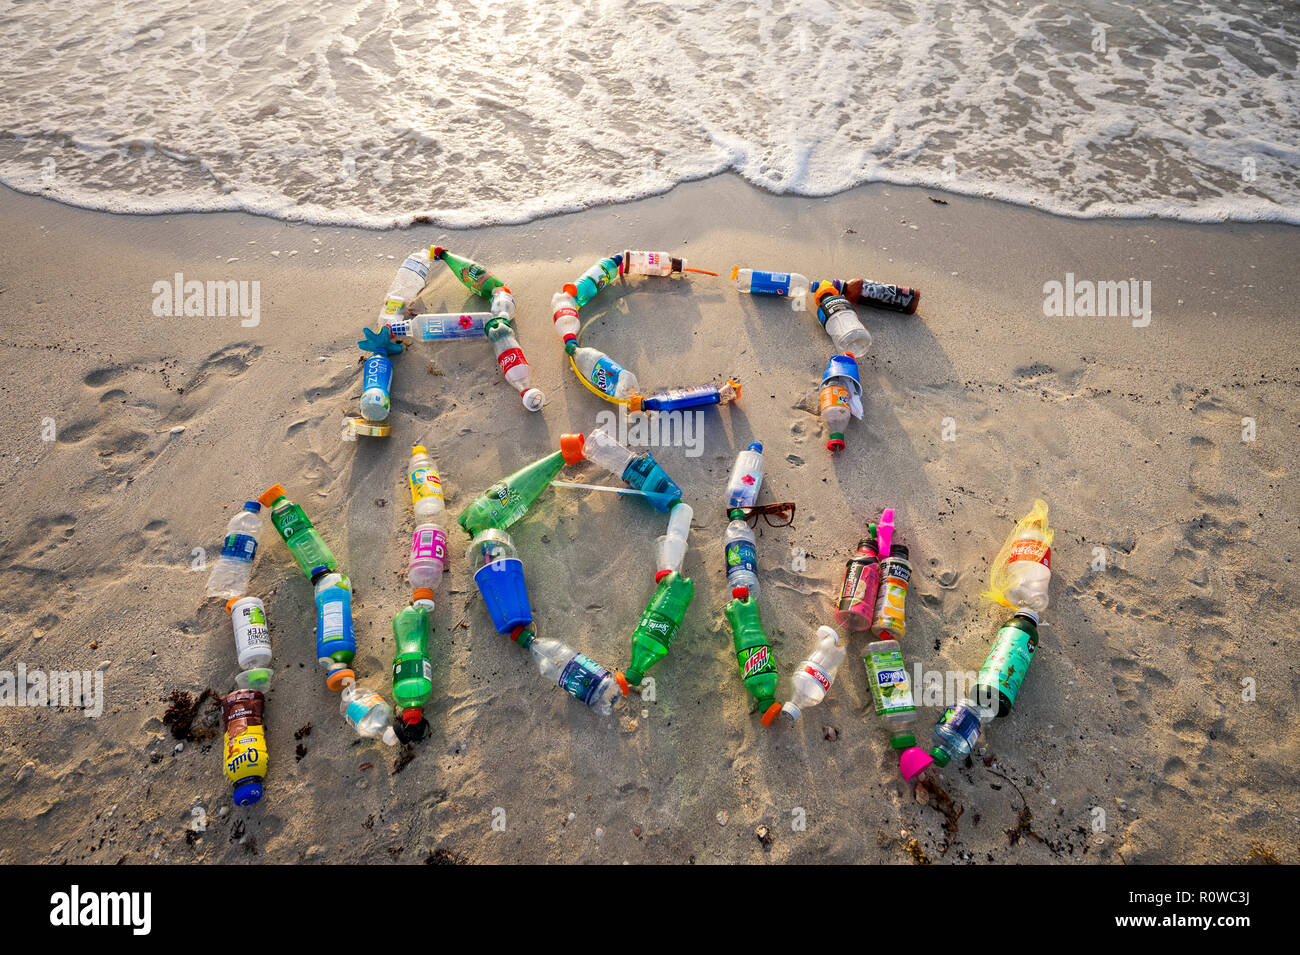 MIAMI - CIRCA AUGUST, 2018: Ocean plastic pollution awareness message spelling out Act Now made from consumer drink bottles found on the beach - Stock Image